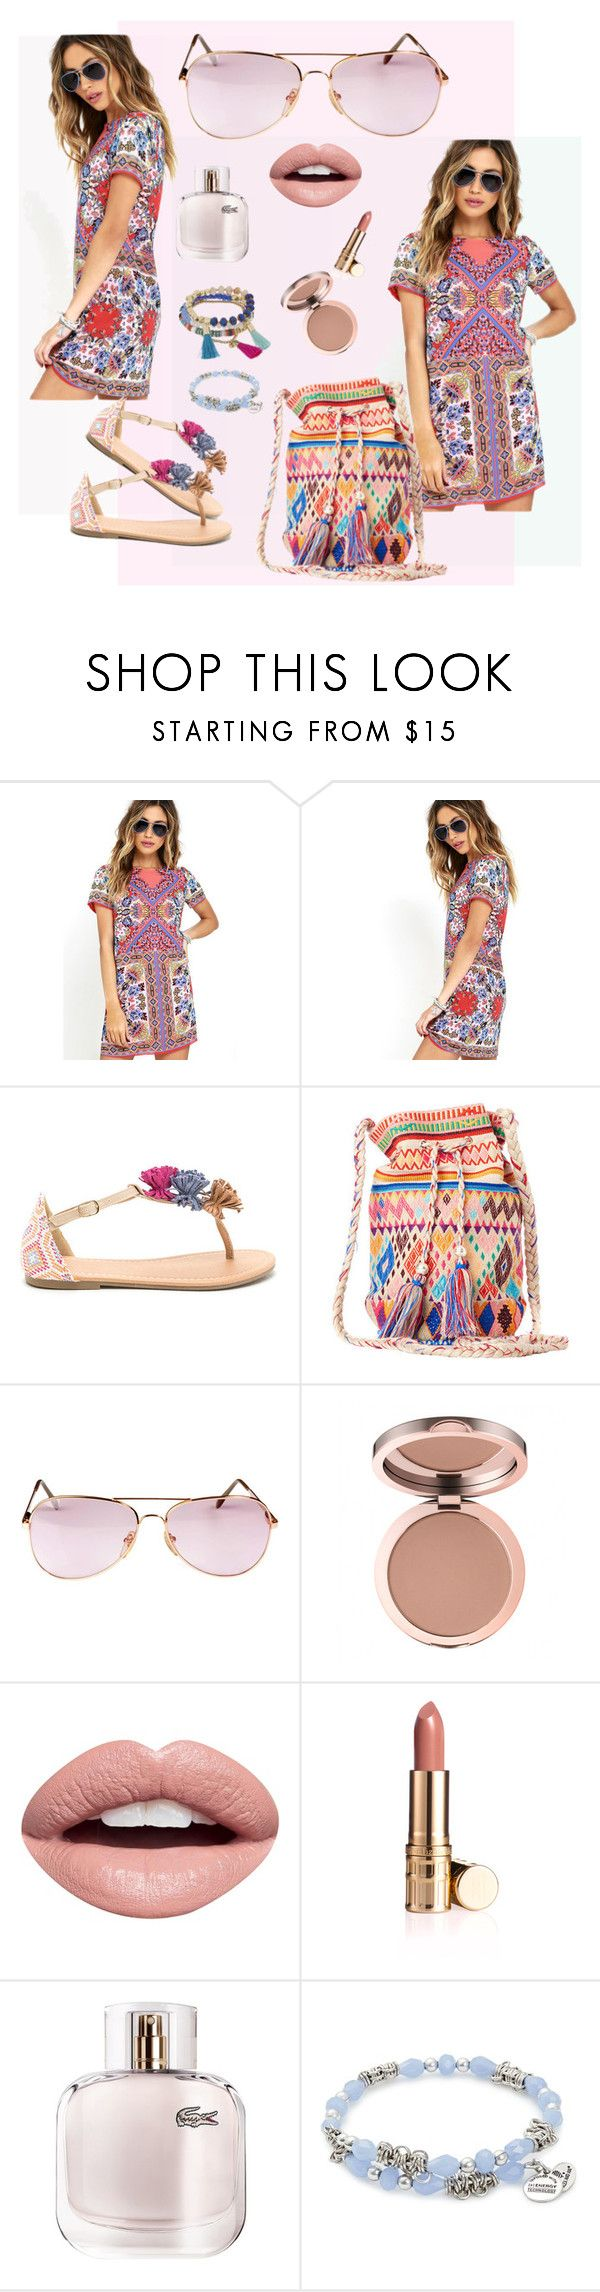 Daily ethnic style by fantastic-sunglasses on Polyvore featuring, Girard vintage sunglasses 80s, LULUS, Star Mela, Alex and Ani, Vintage Eyewear, Nevermind, Lacoste and vintage https://www.etsy.com/listing/499152954/girard-vintage-sunglasses-80s-made-in?ref=shop_home_active_59